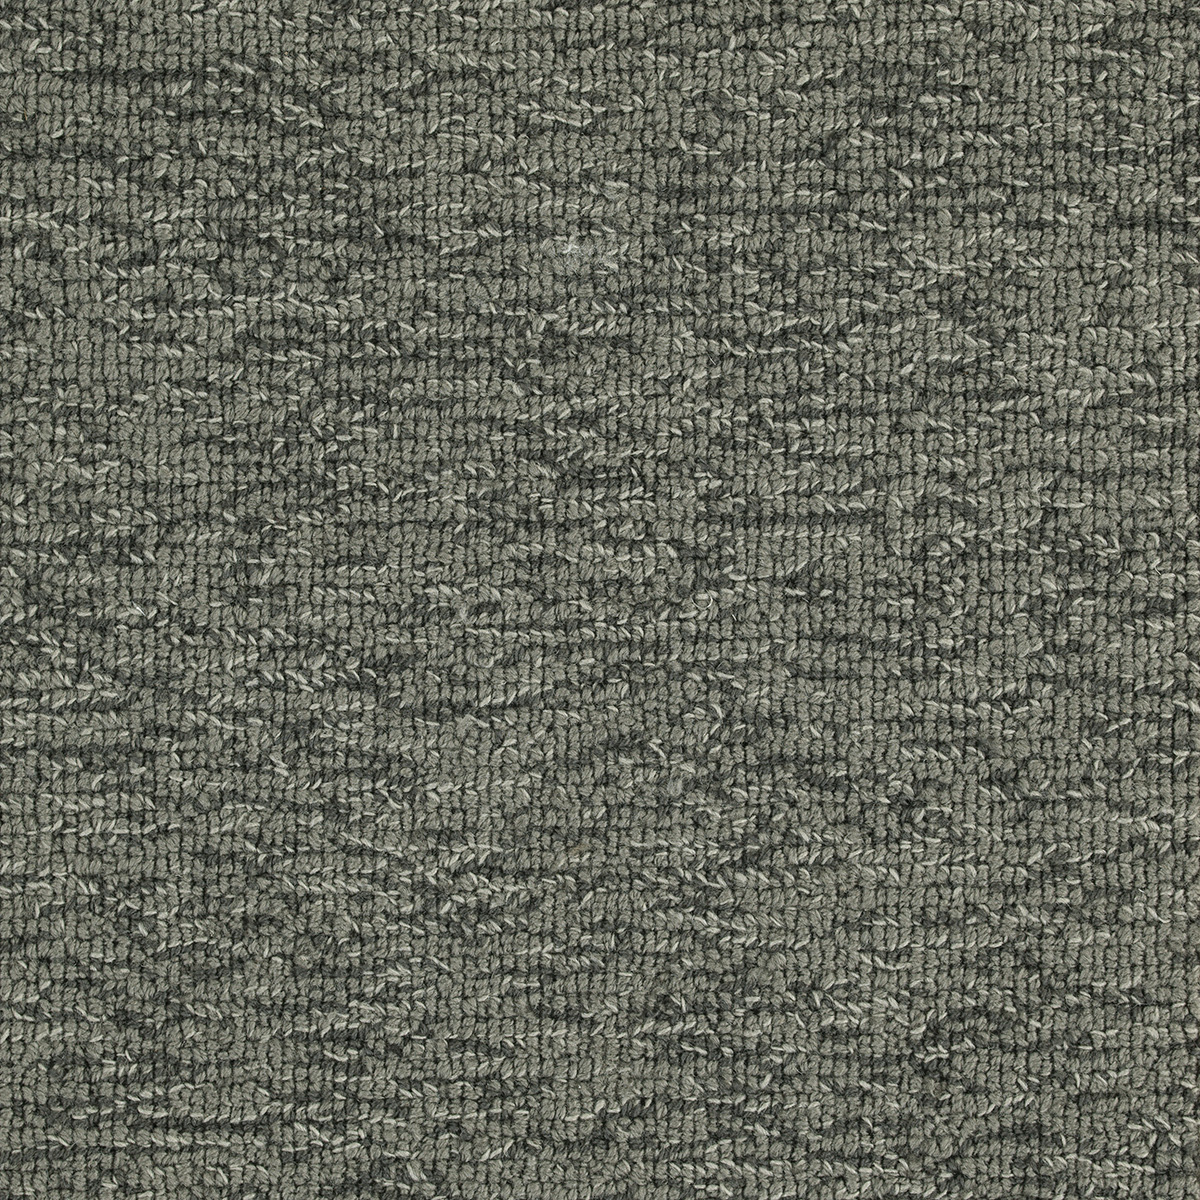 sonata-striae-dark-grey